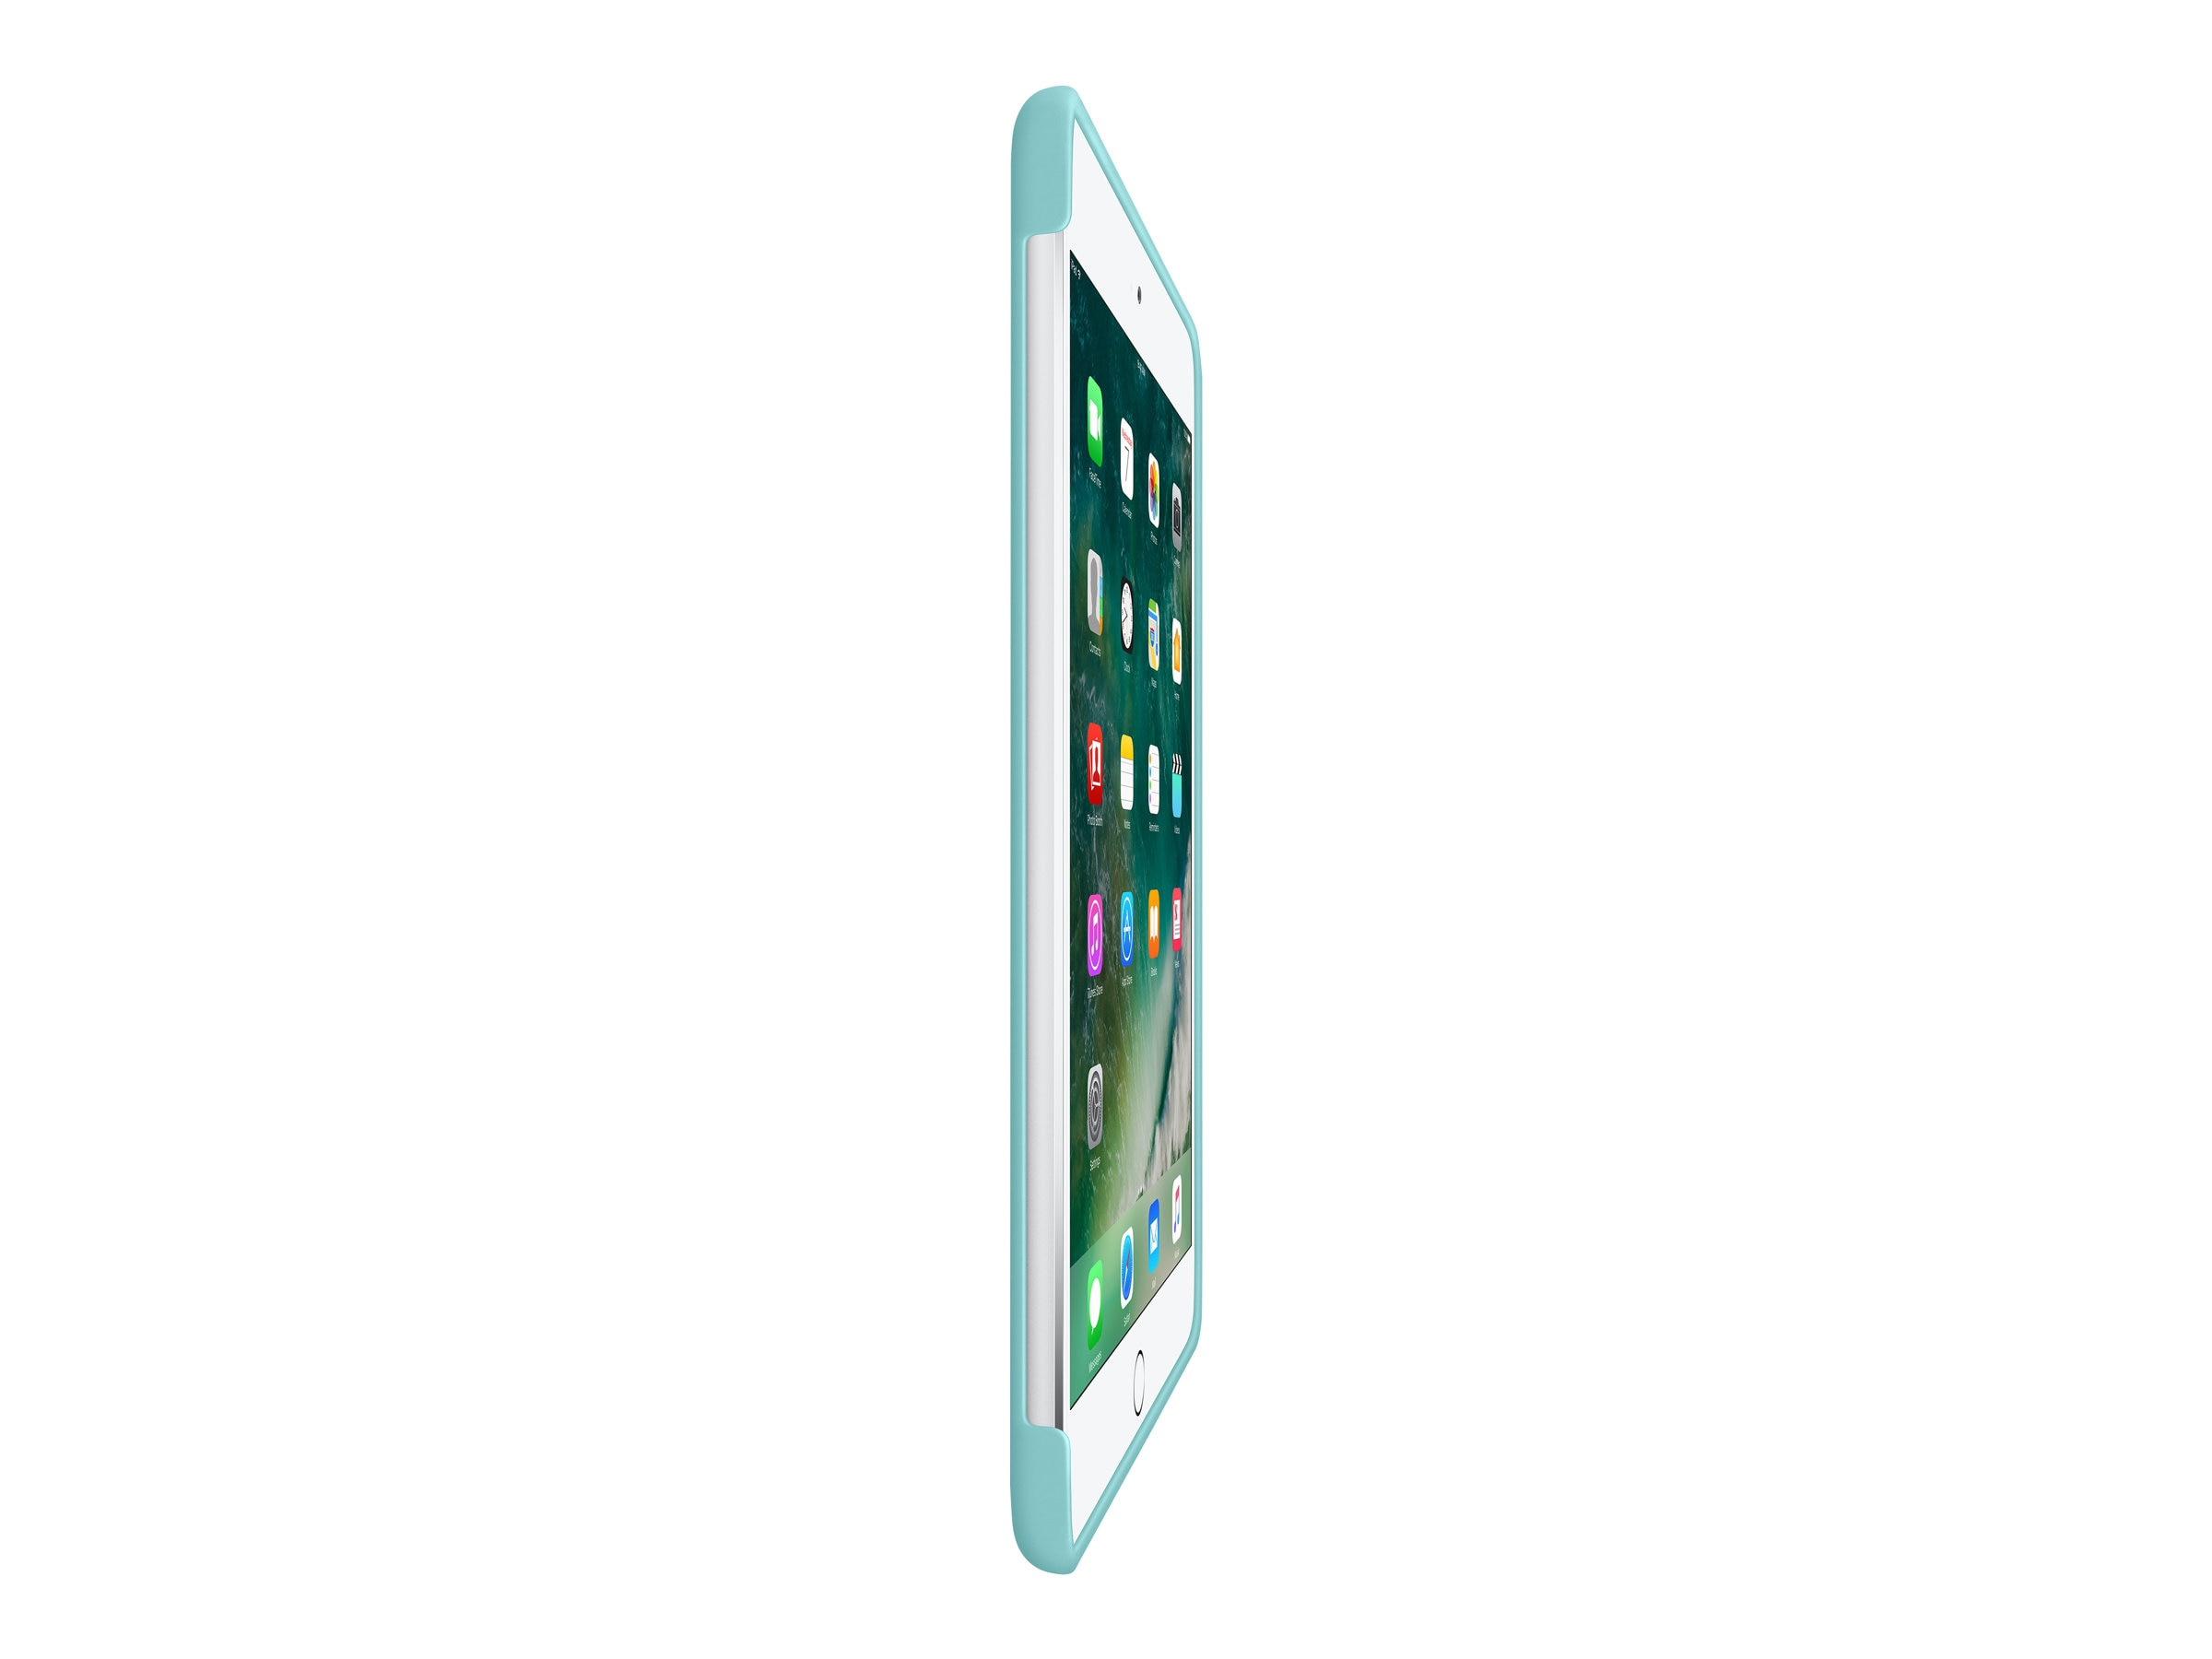 Apple Silicone Case for iPad mini 4, Sea Blue